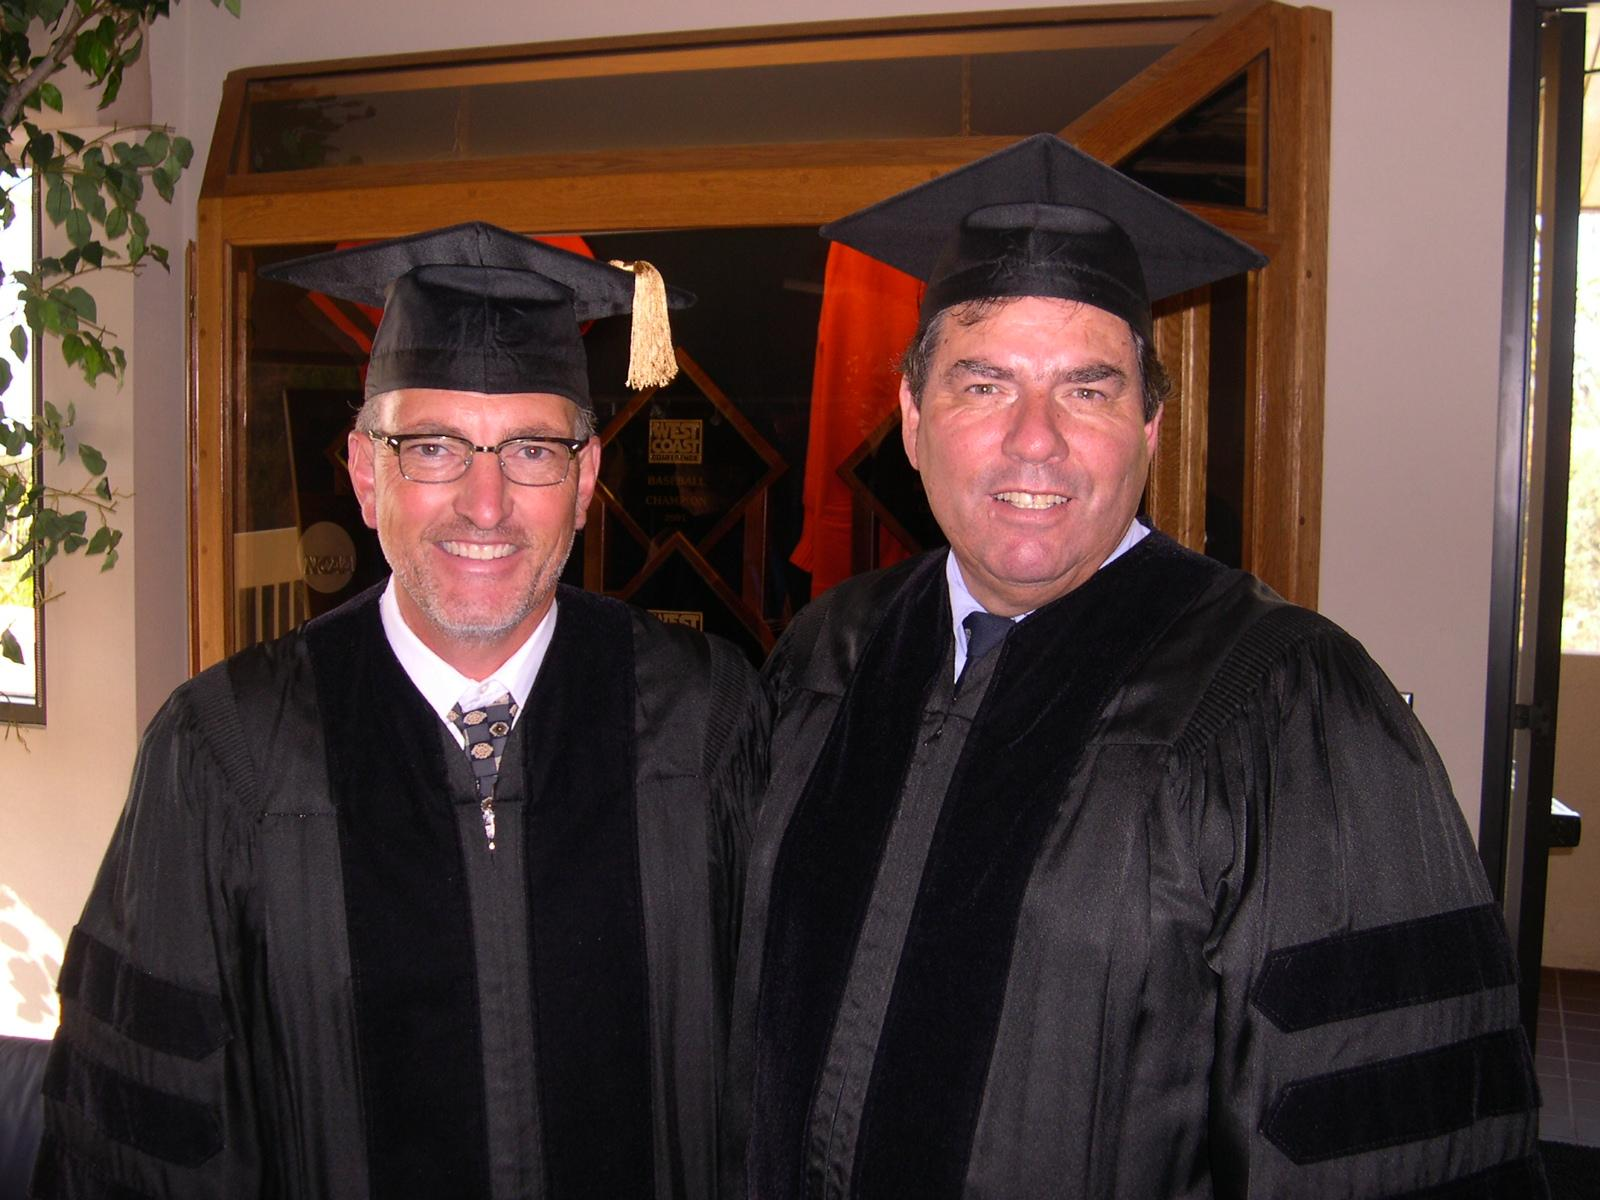 Crest Board member Clark Cowan and Pepperdine Vice Chancellor Lou Drobnick